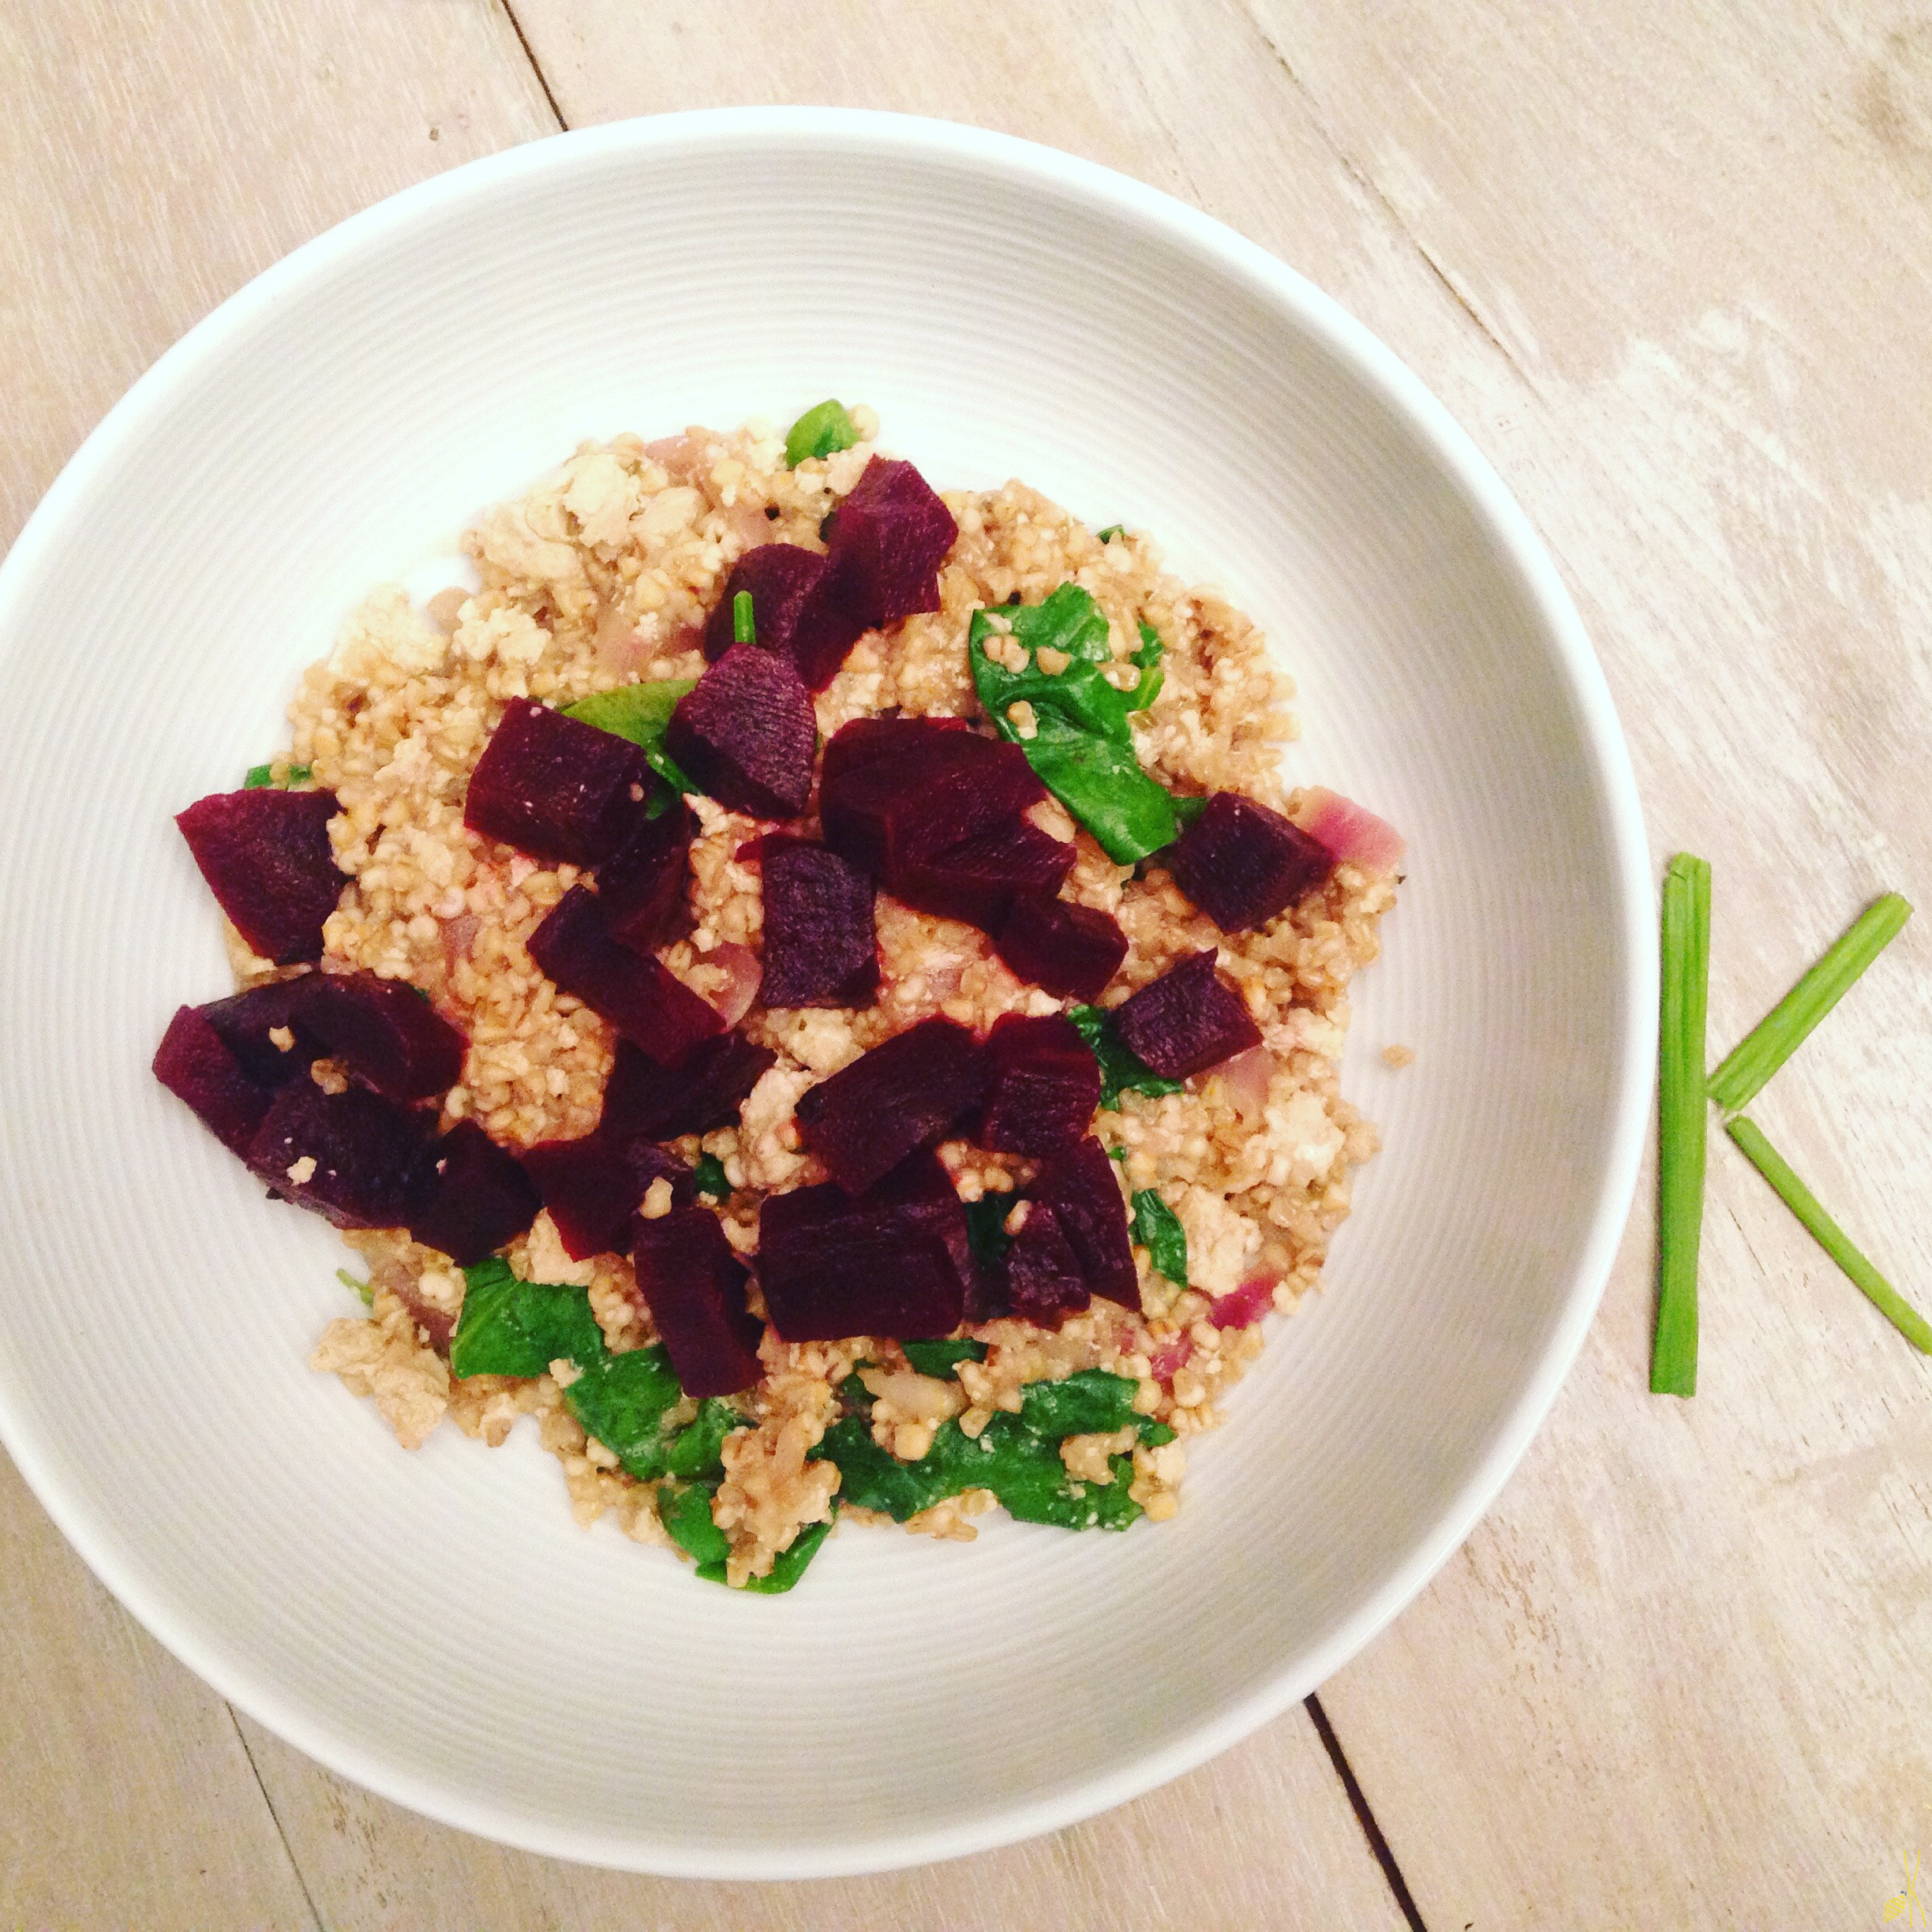 Riceless risotto with beets